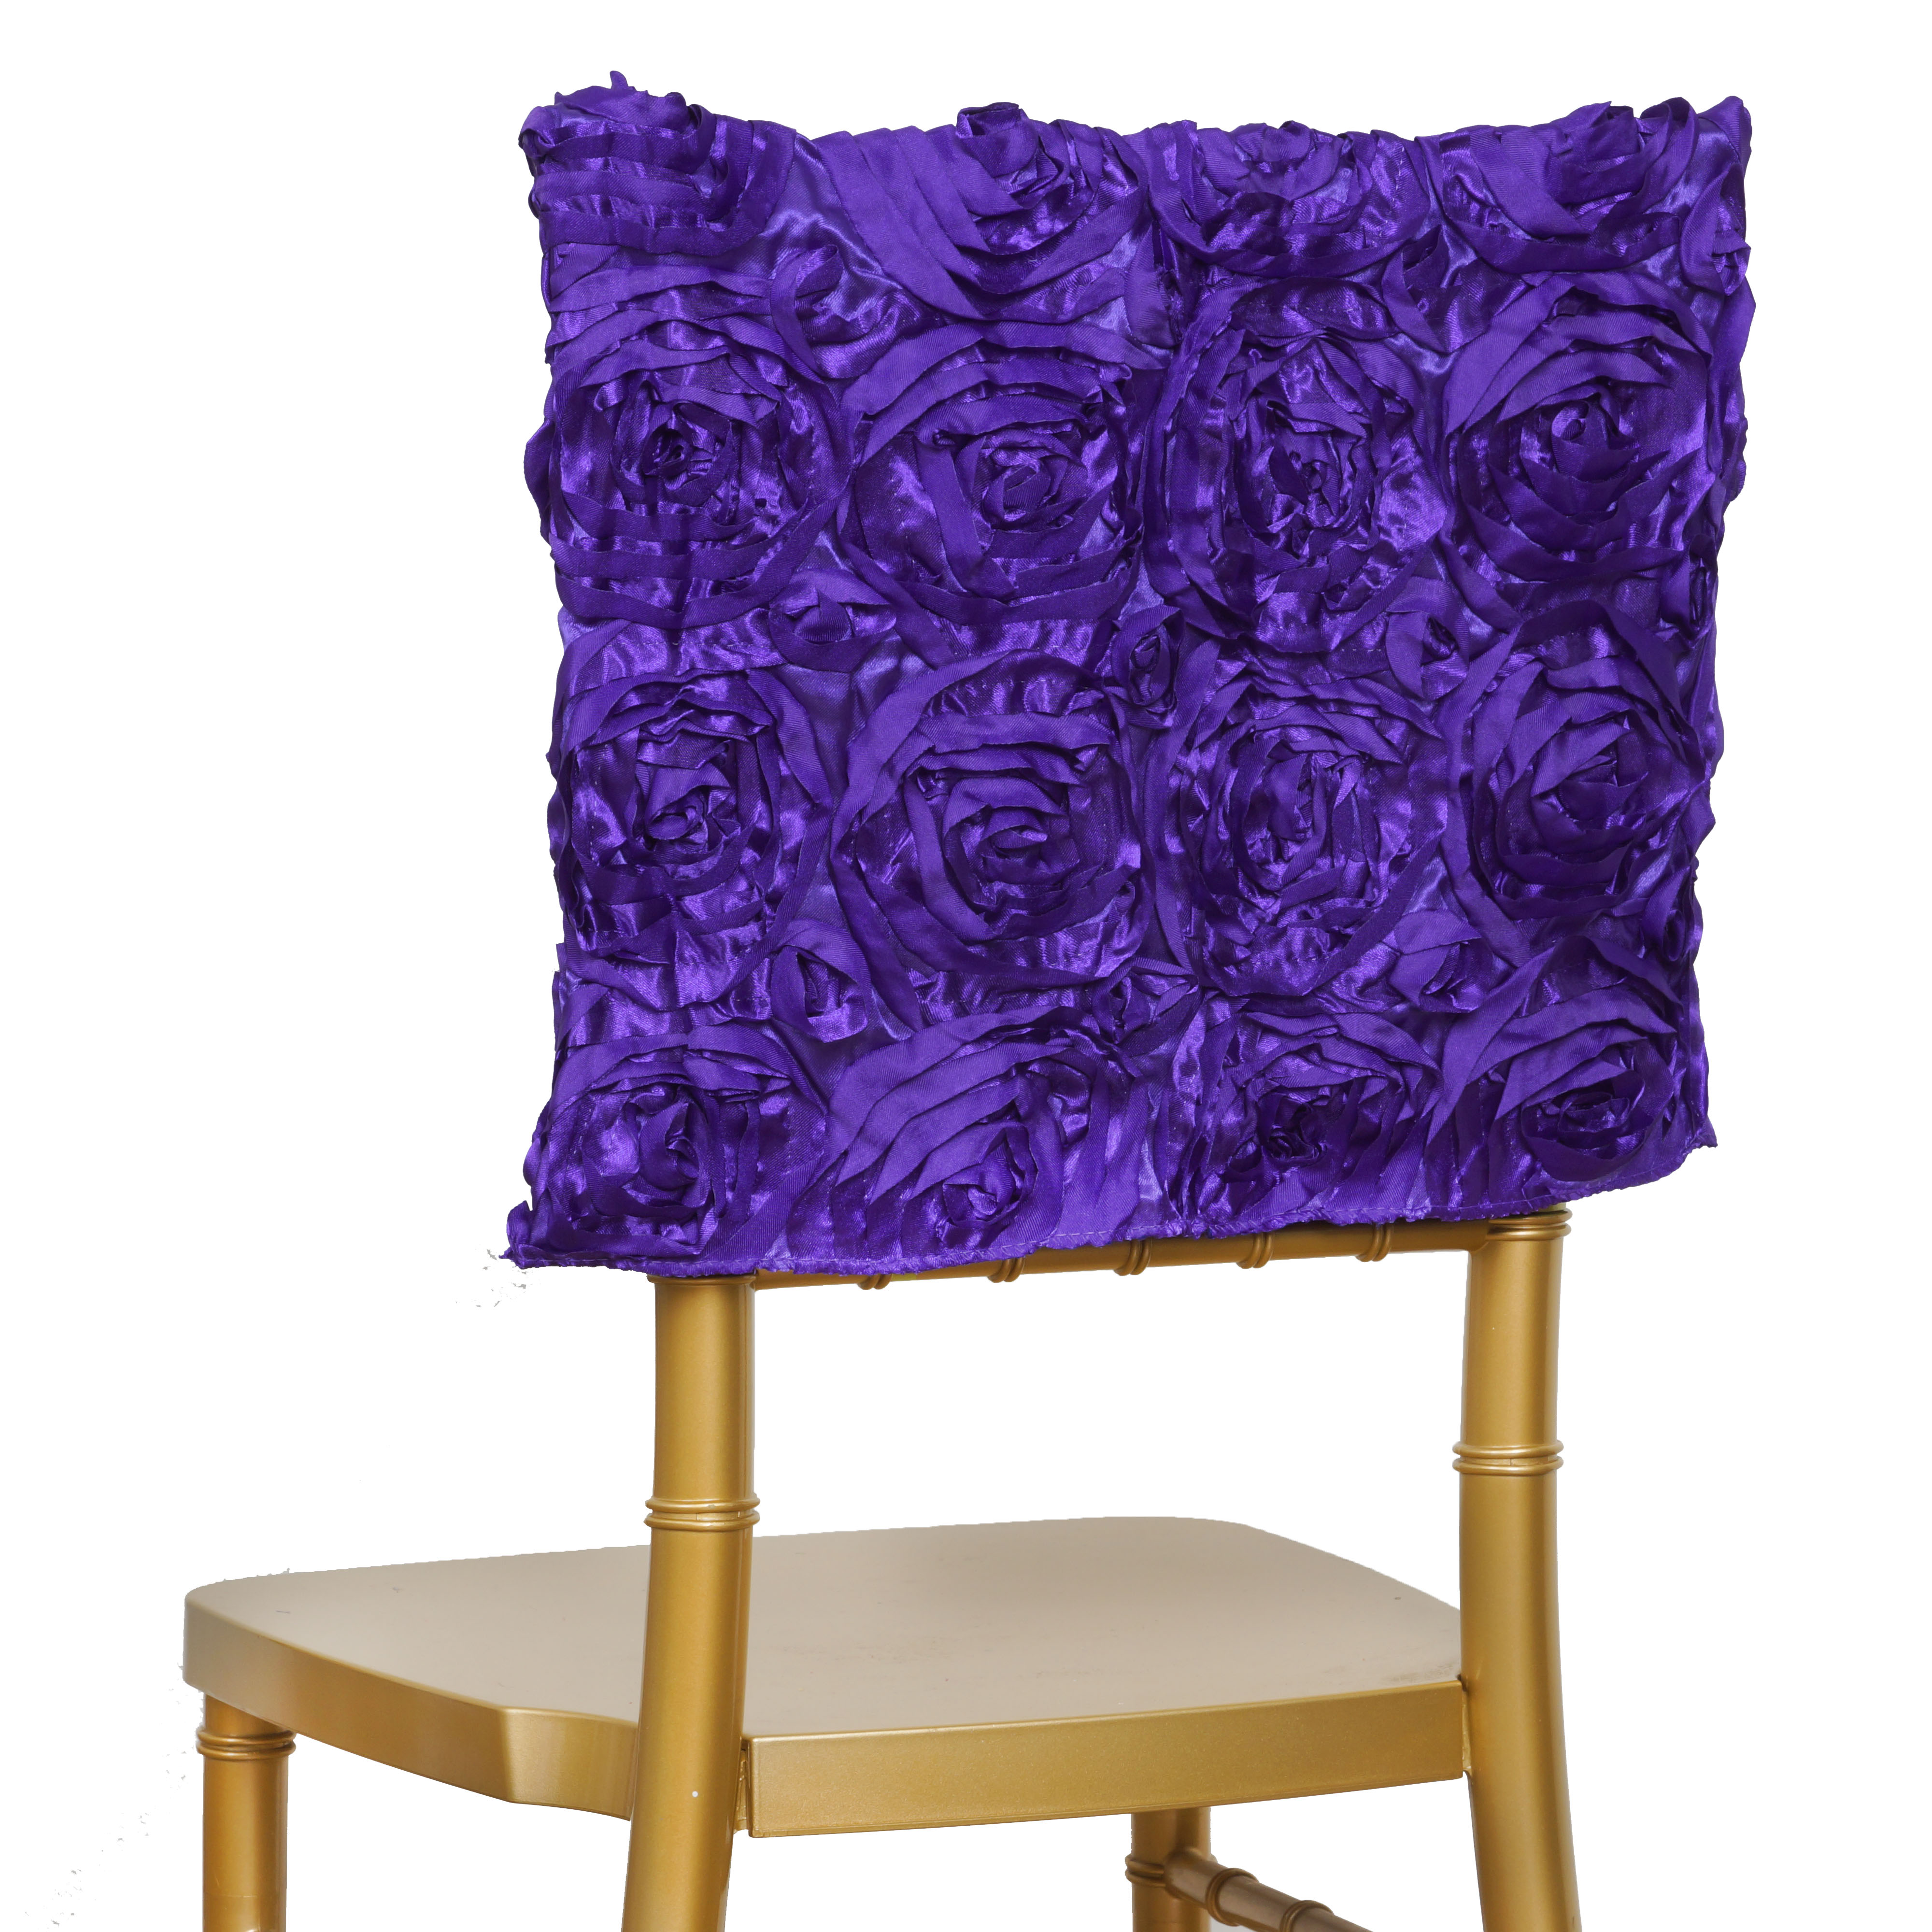 chair caps covers folding the range balsacircle raised roses square top cap cover slipcover for party wedding reception decorations walmart com